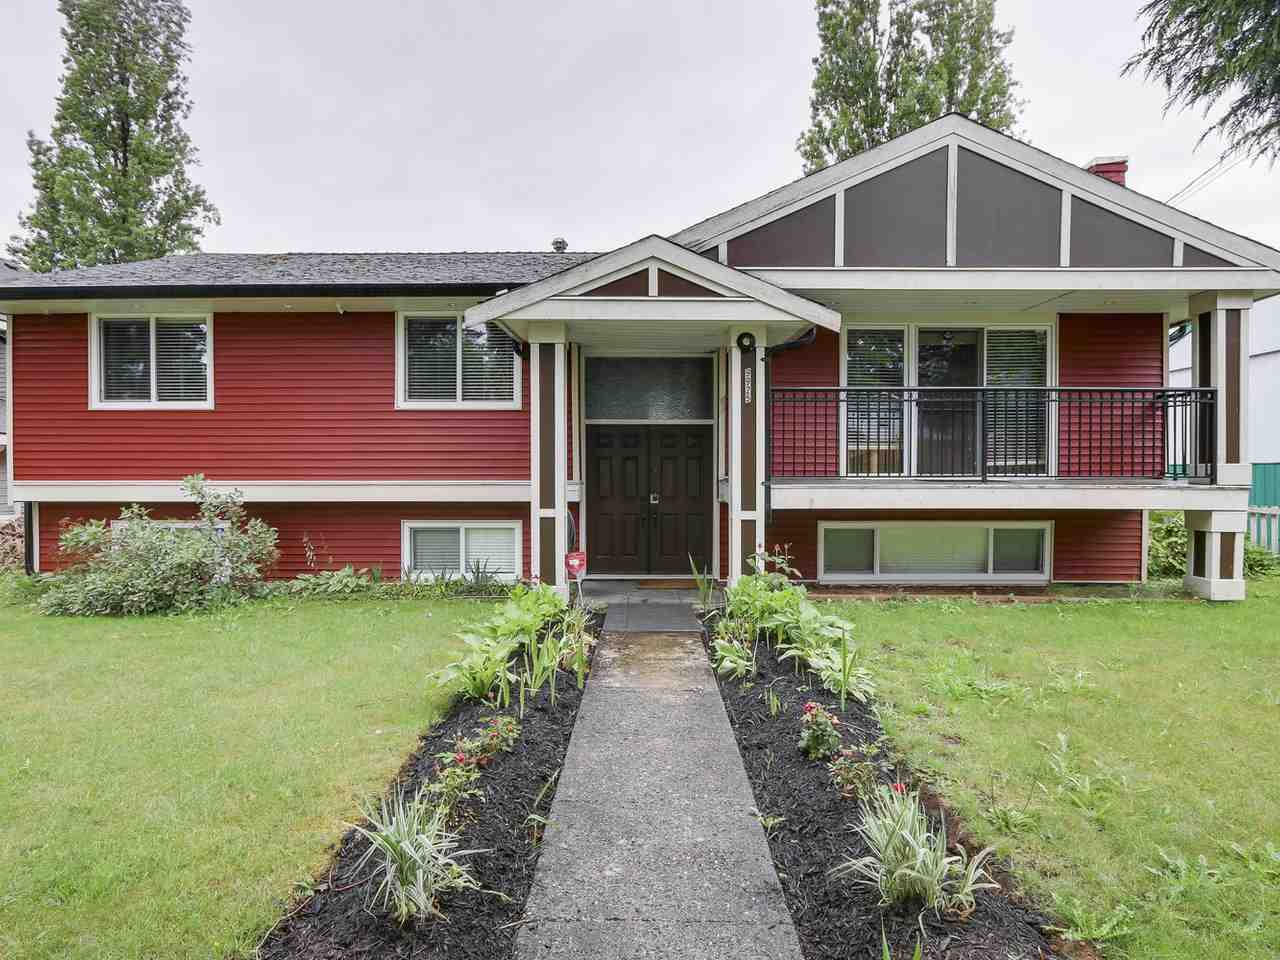 Main Photo: 9925 128 Street in Surrey: Cedar Hills House for sale (North Surrey)  : MLS®# R2179702